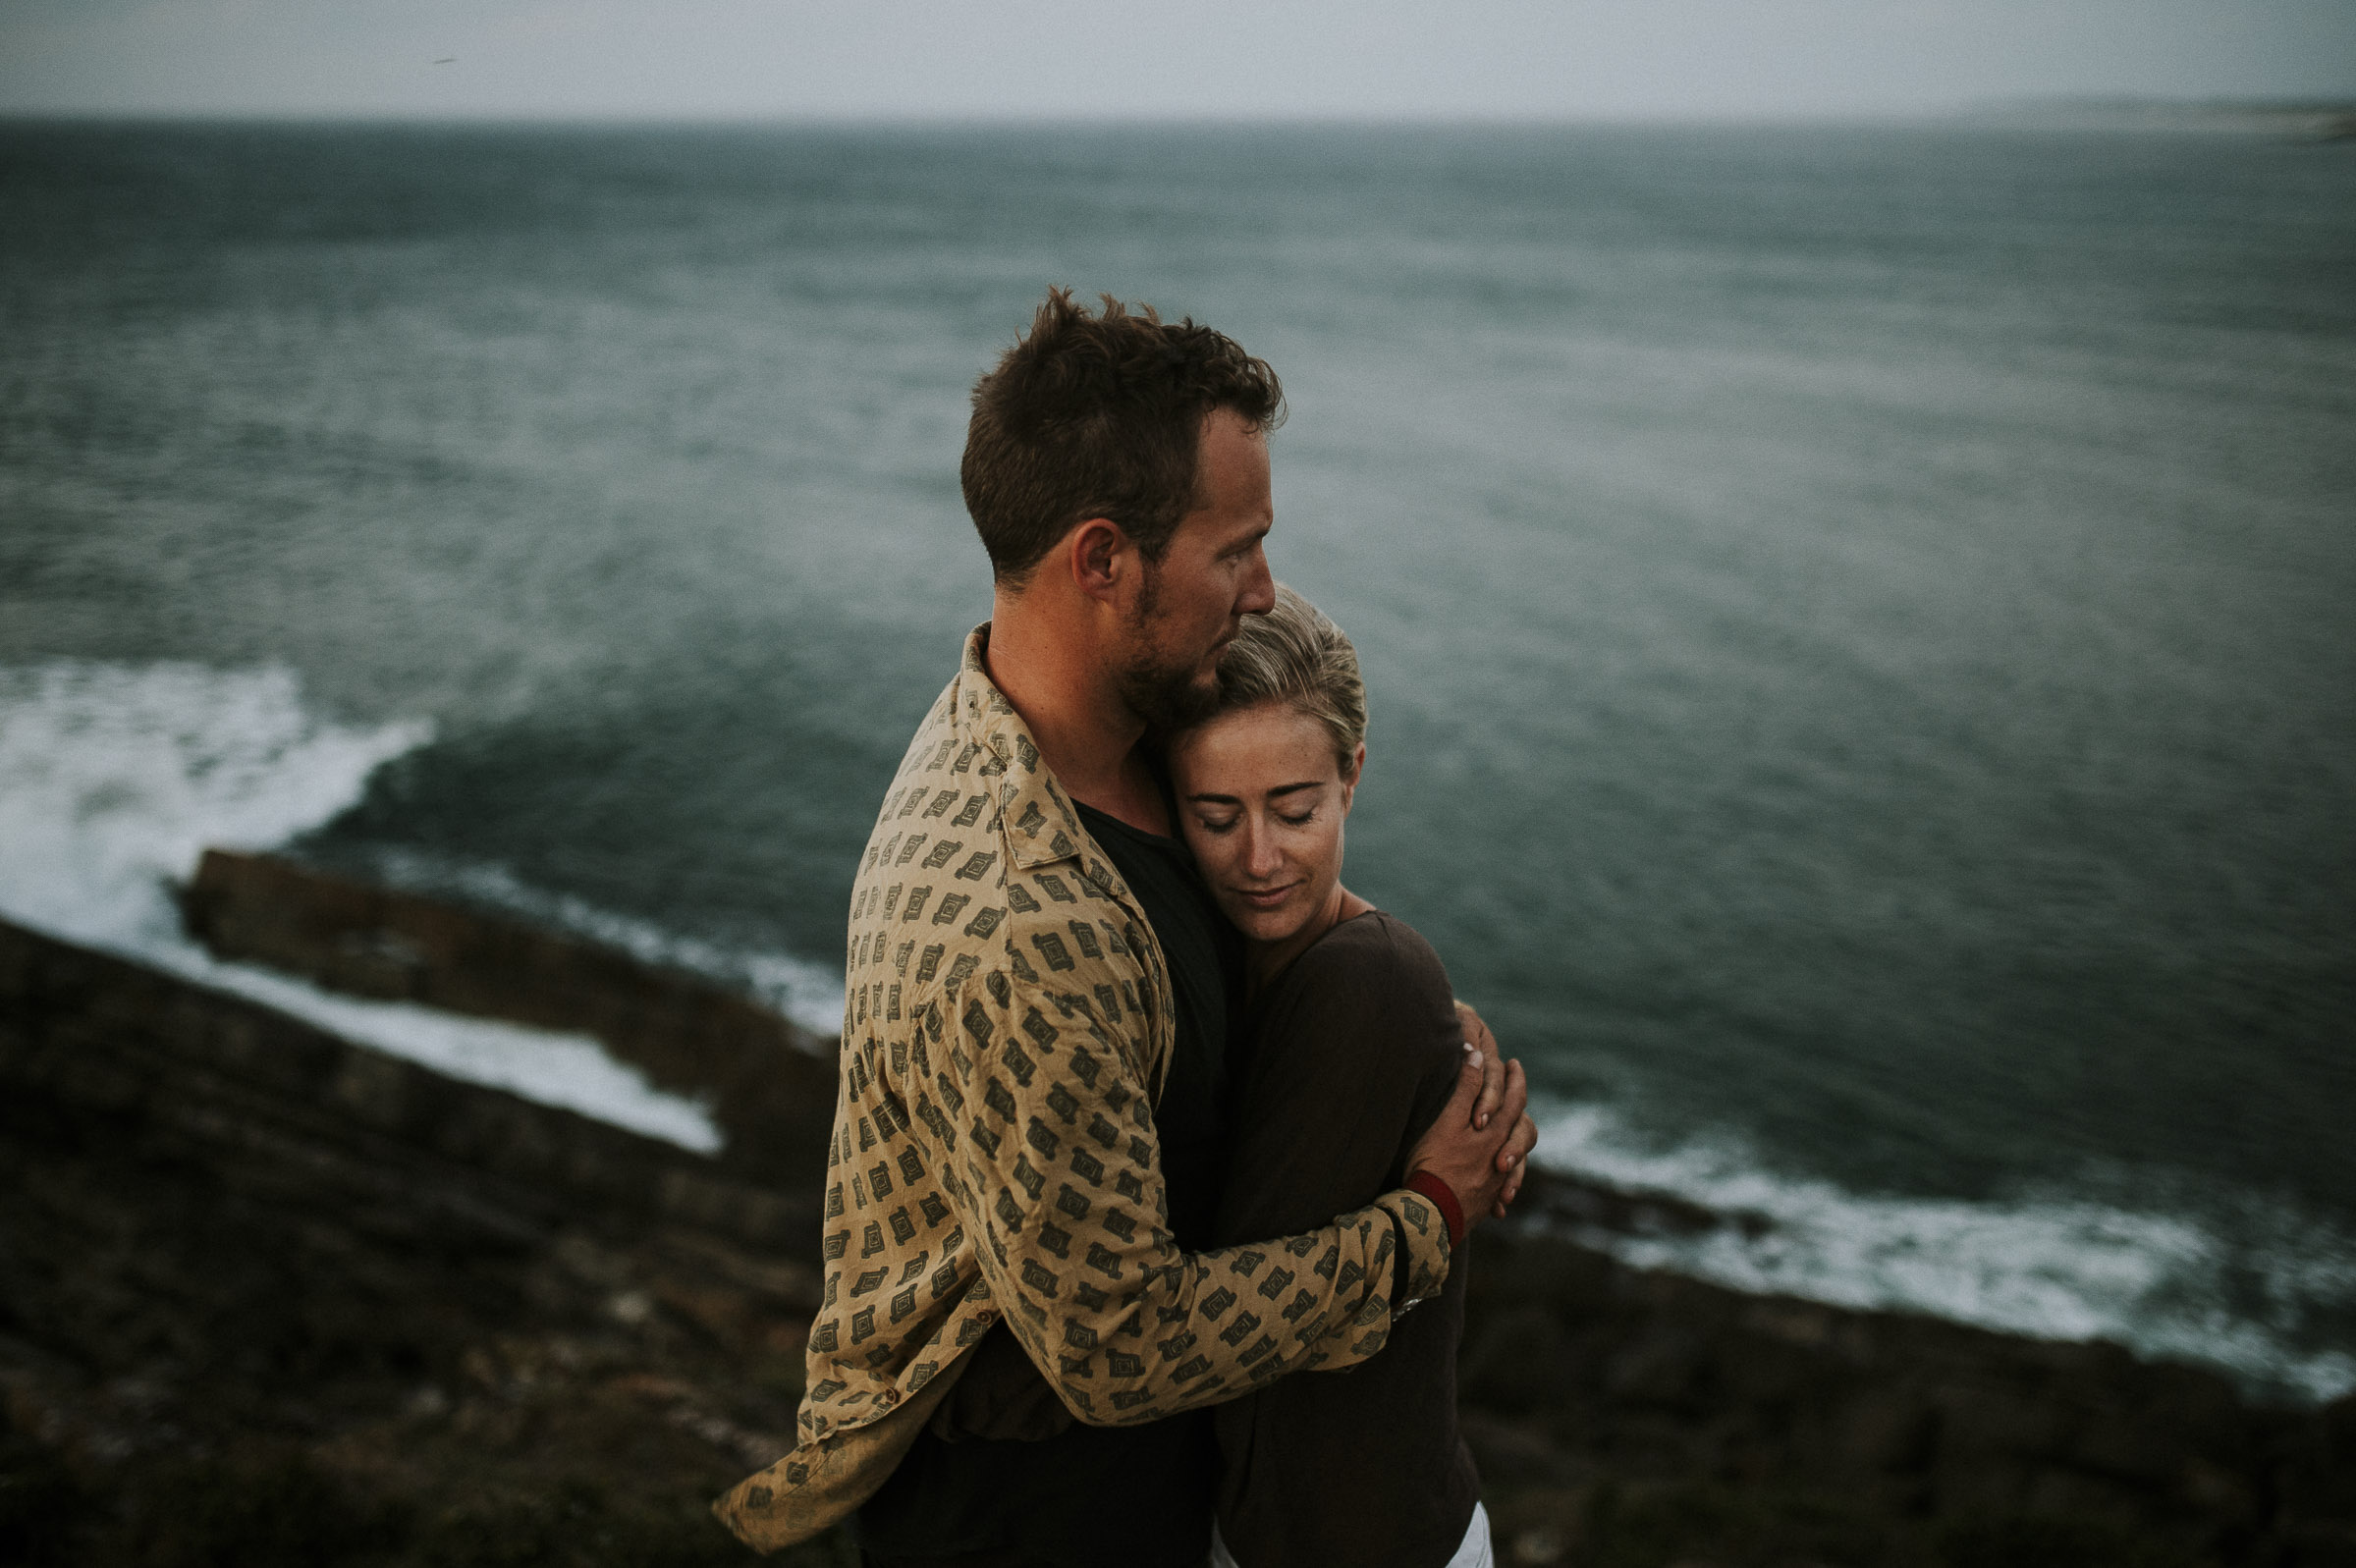 Jess_Nick_Treachary_Engagement_Shoot_Blog-11.jpg